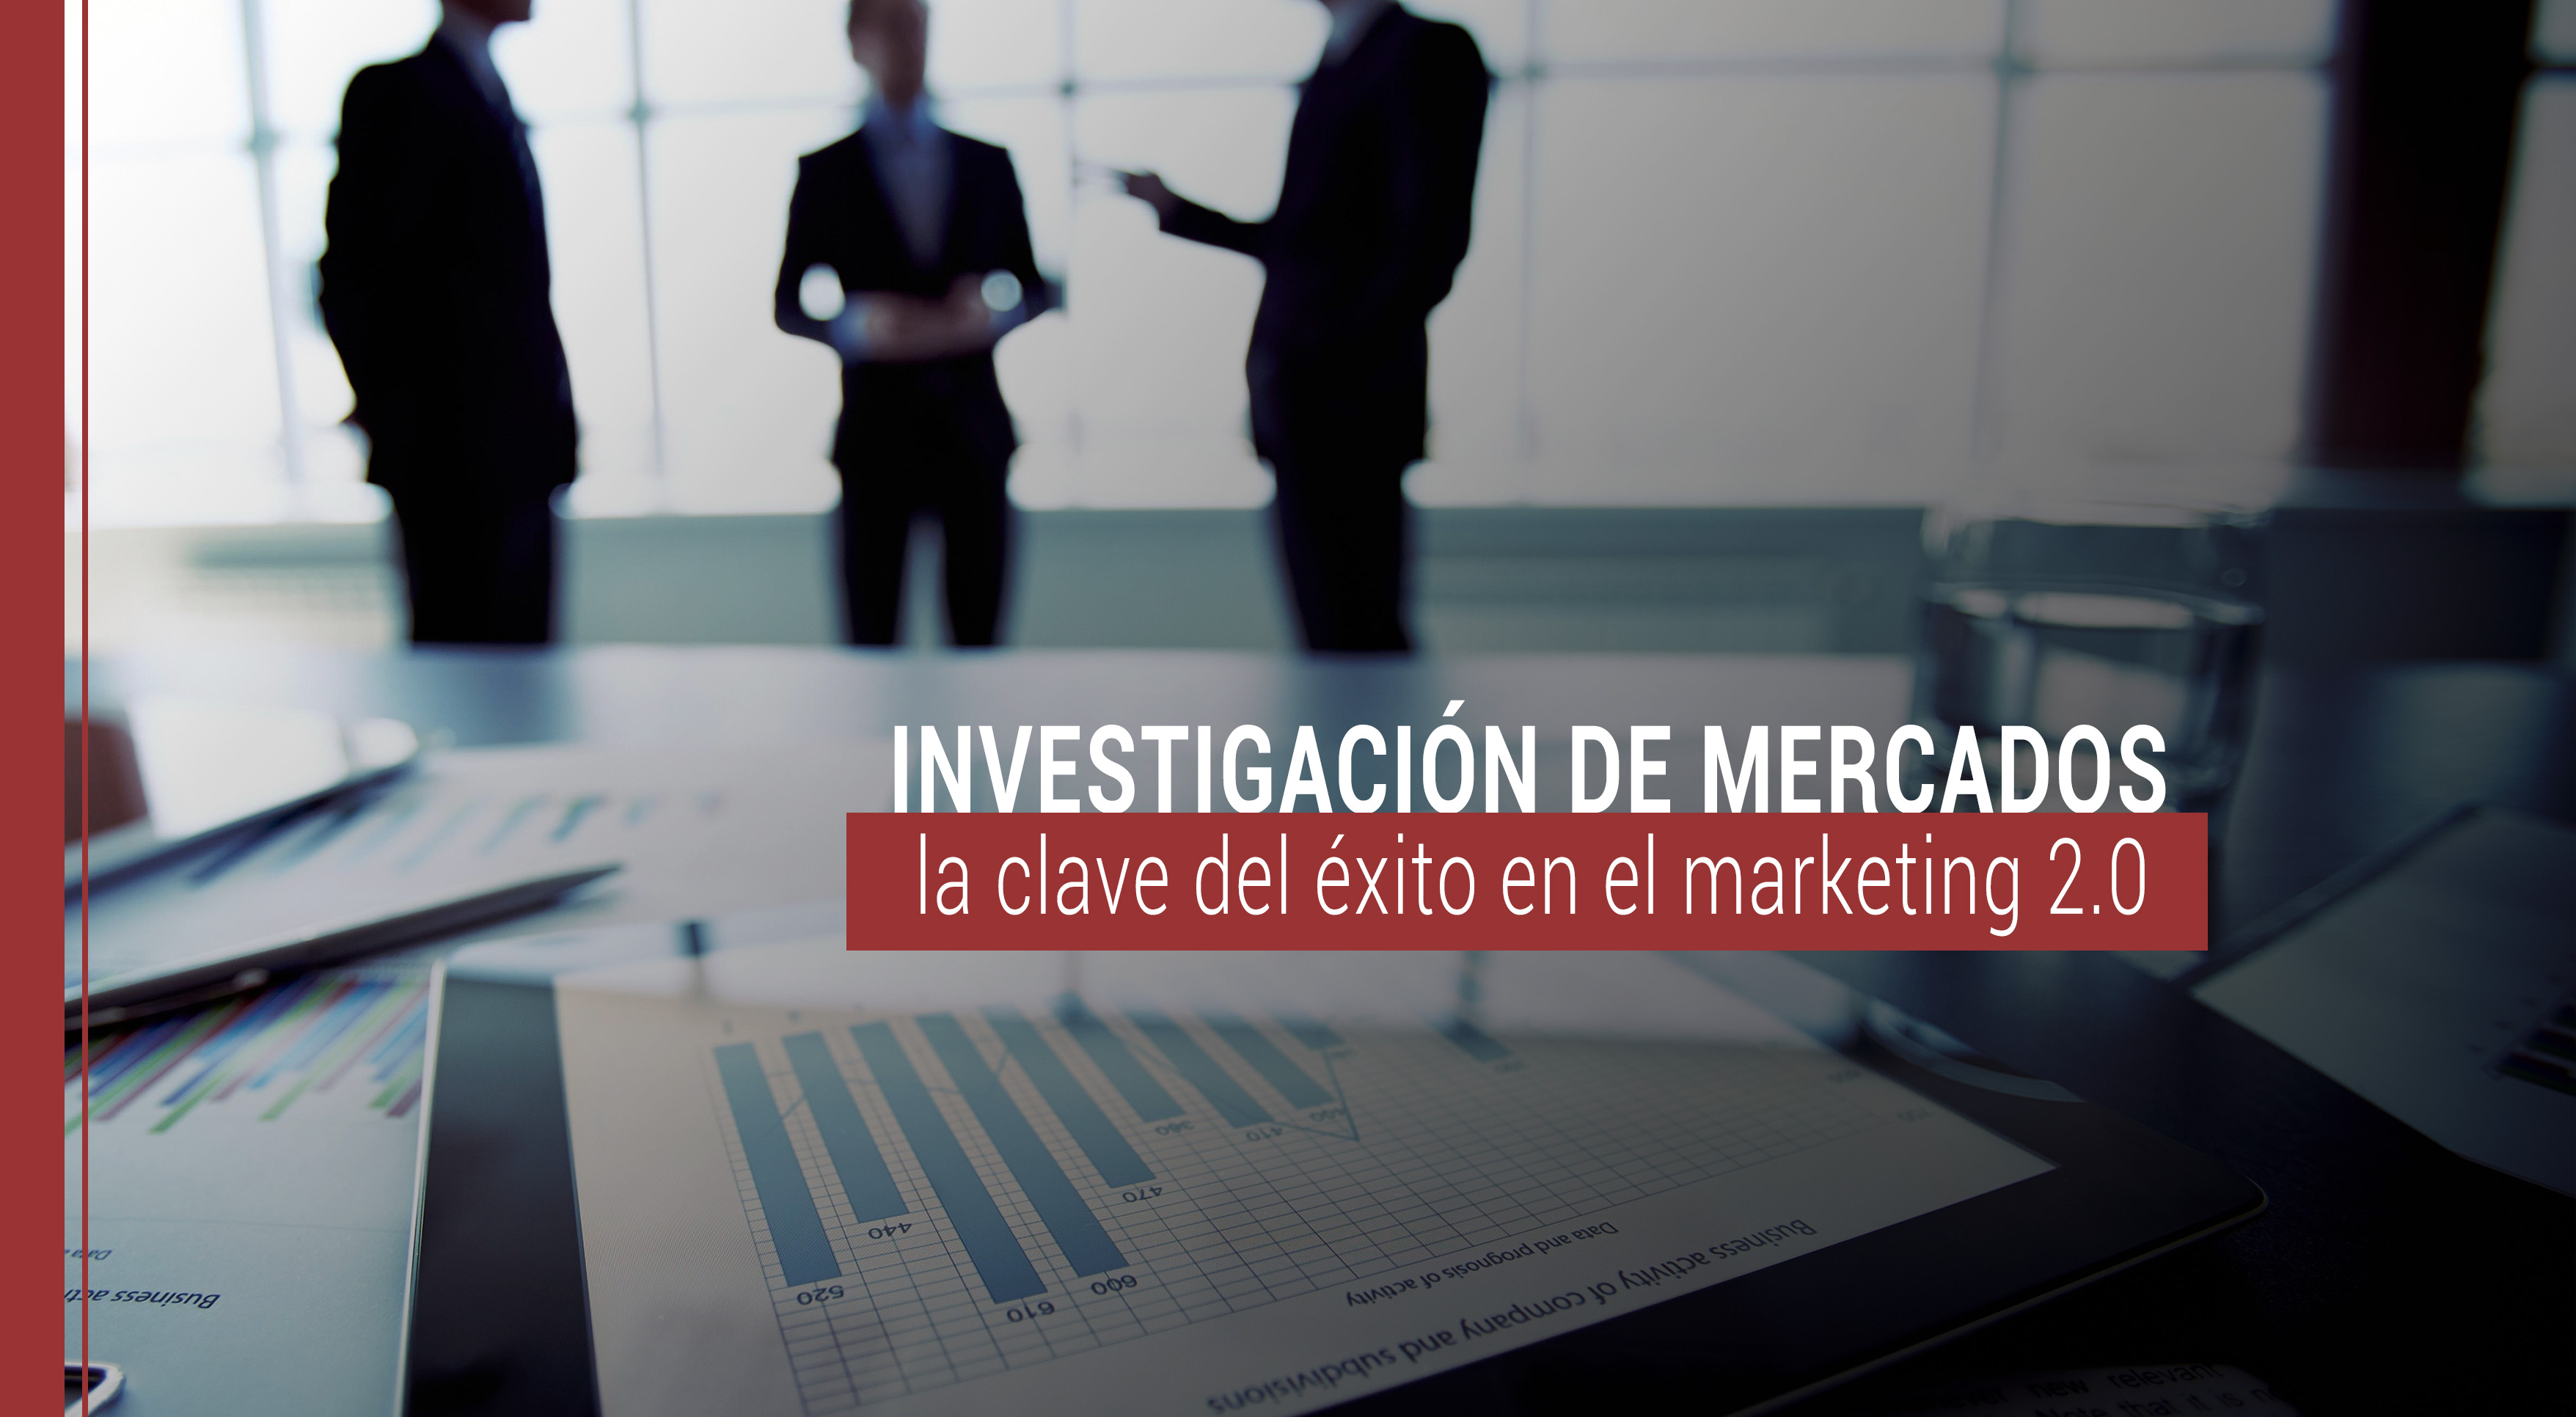 la investigacion de mercados en el marketing 2.0